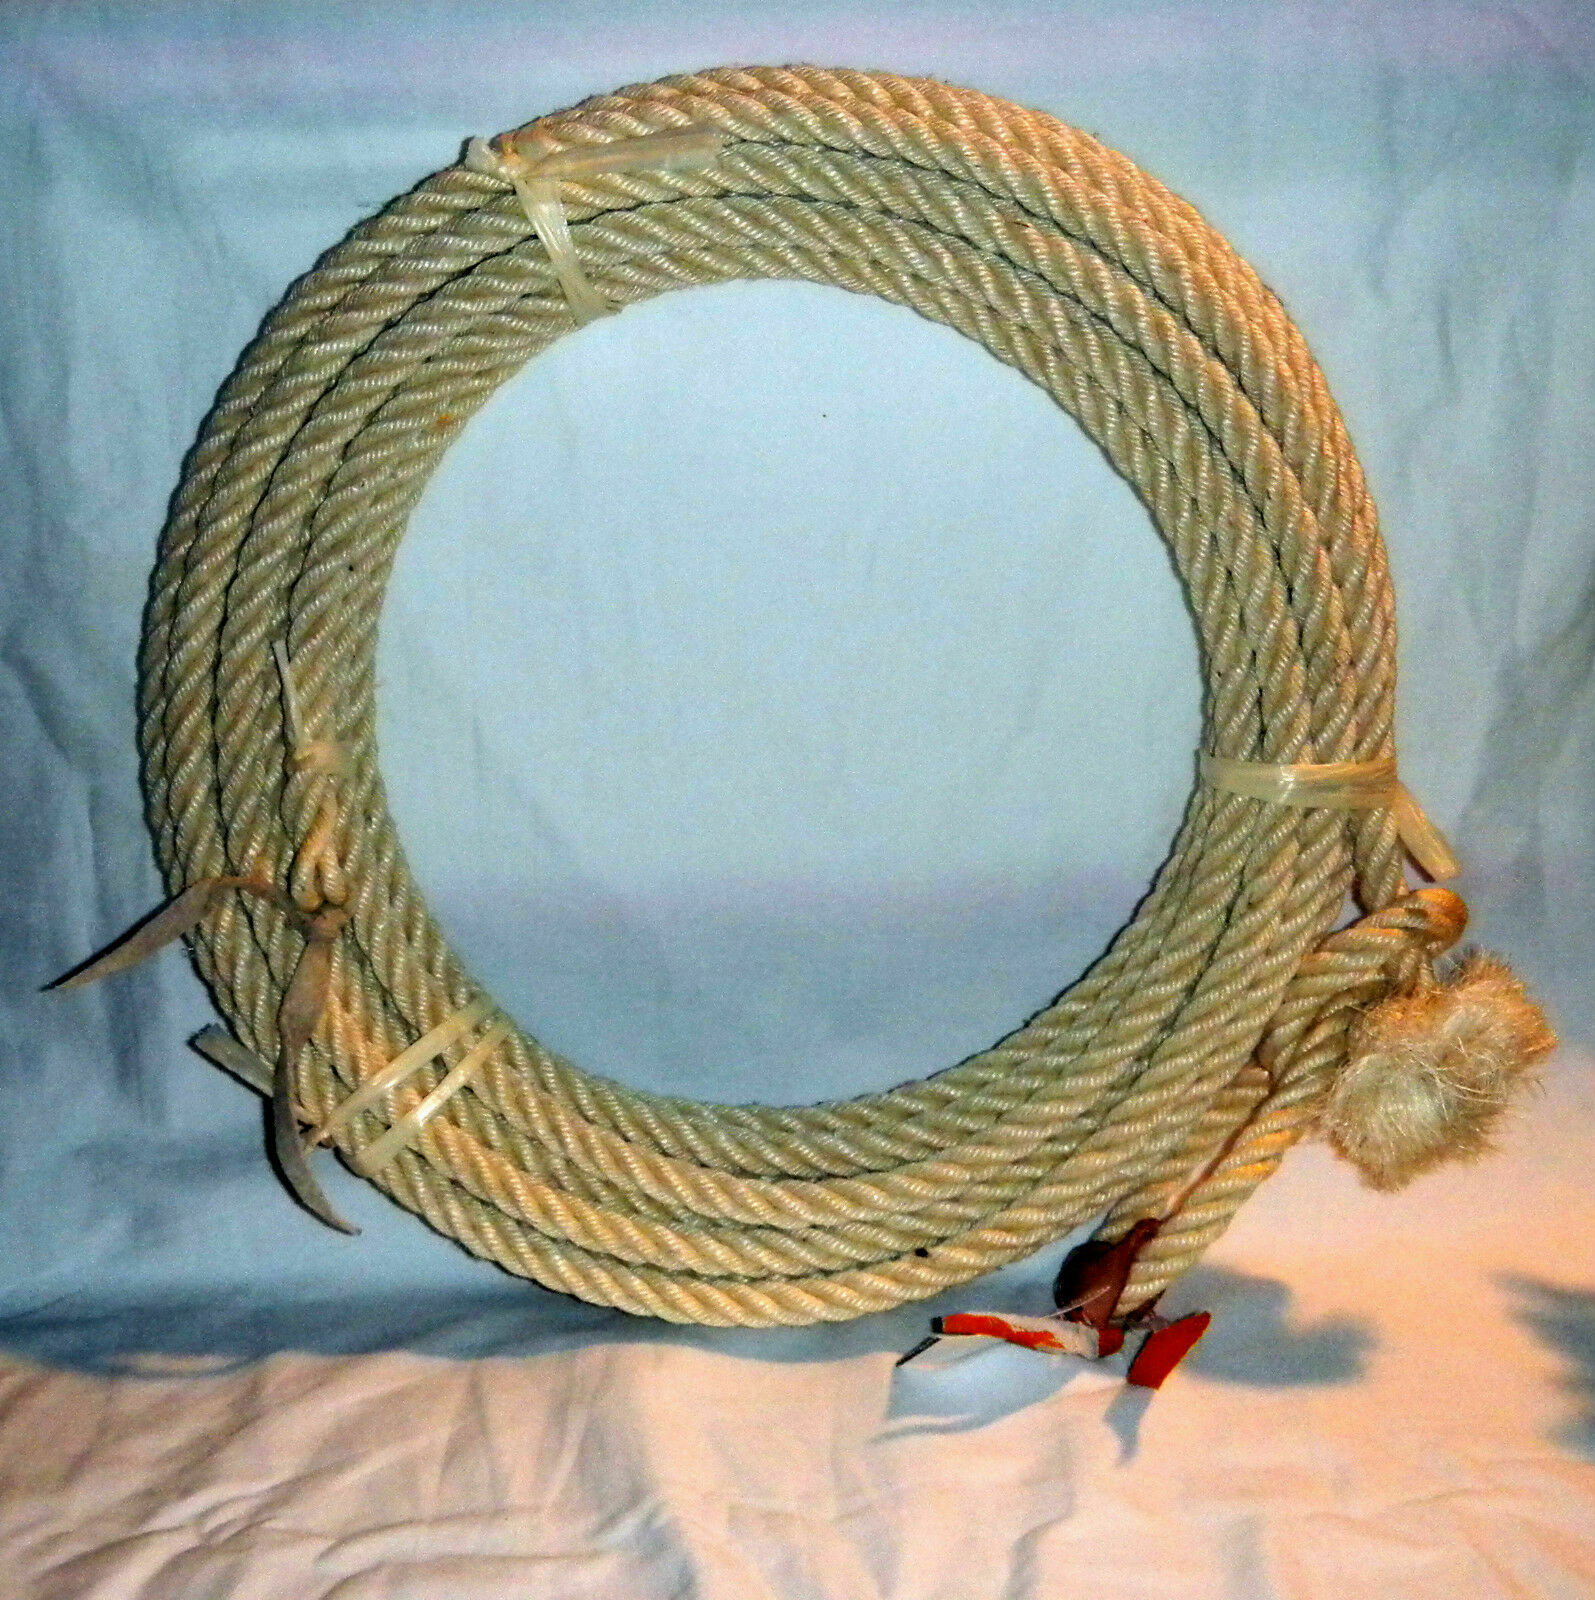 40 Ft Western astaeo Rope Lasso  Lariat Riata Agave Maguey Straw From Mexico